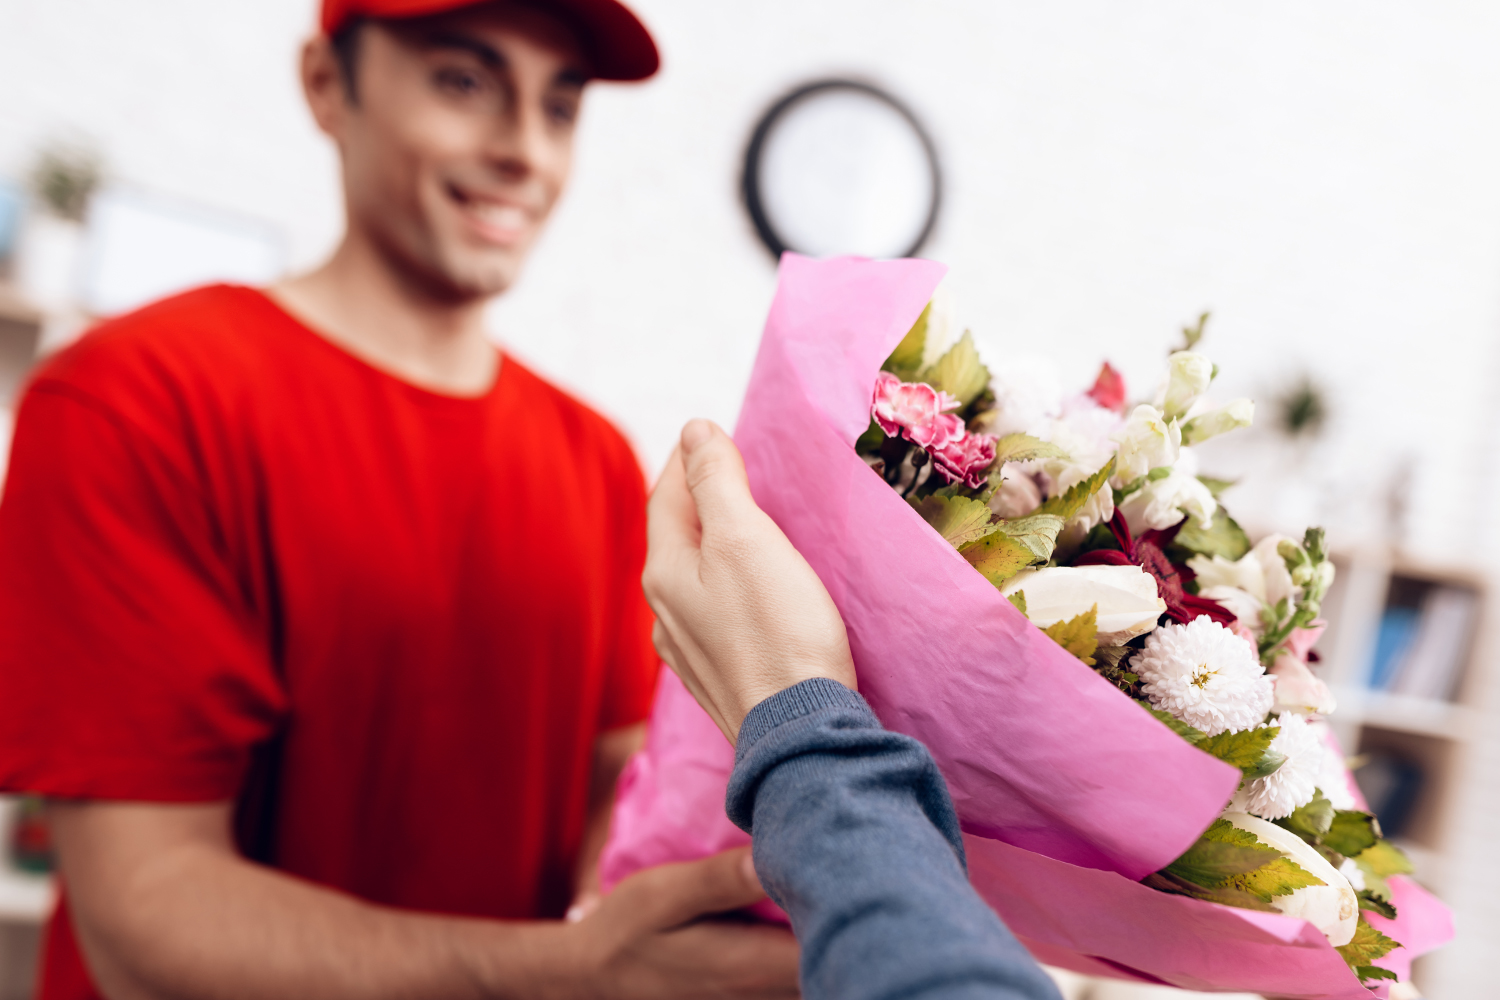 How to Keep Customers Smiling This Valentine's Day